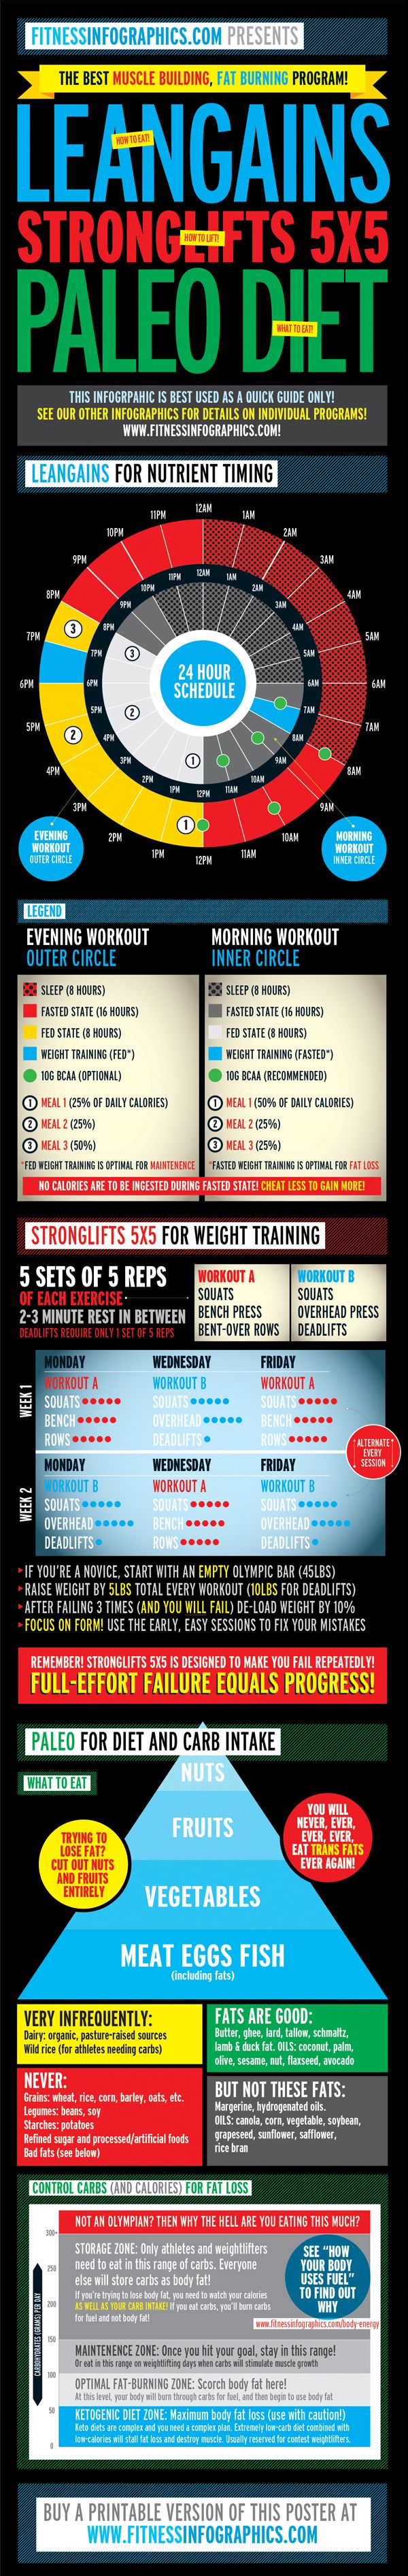 "Like it says: quick guide only. Fitness and health are not single-solution equations. Learn continually and adapt. ""The best muscle building program! [infographic] via @Tribesports"""